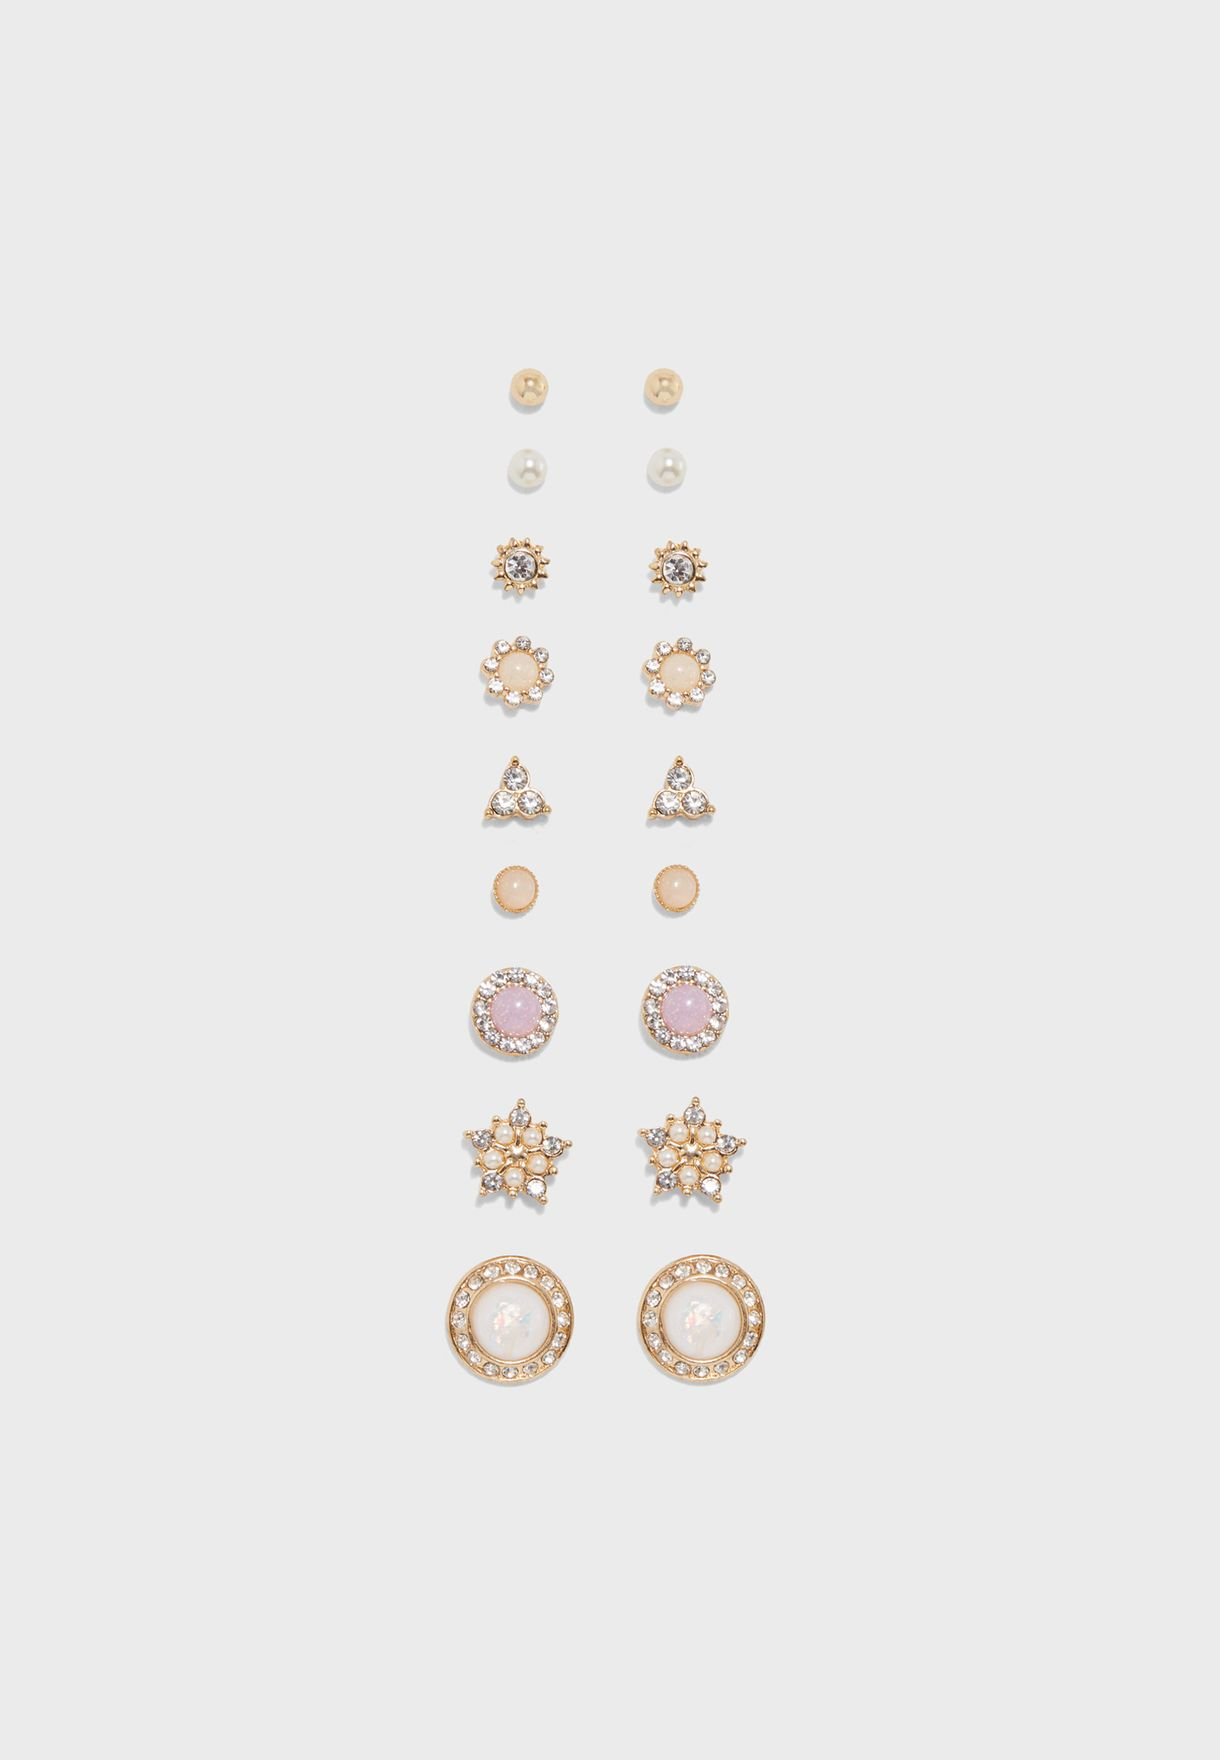 cd75eef2d Shop Forever 21 gold Assorted Stud Earrings Set 305887 for Women in ...